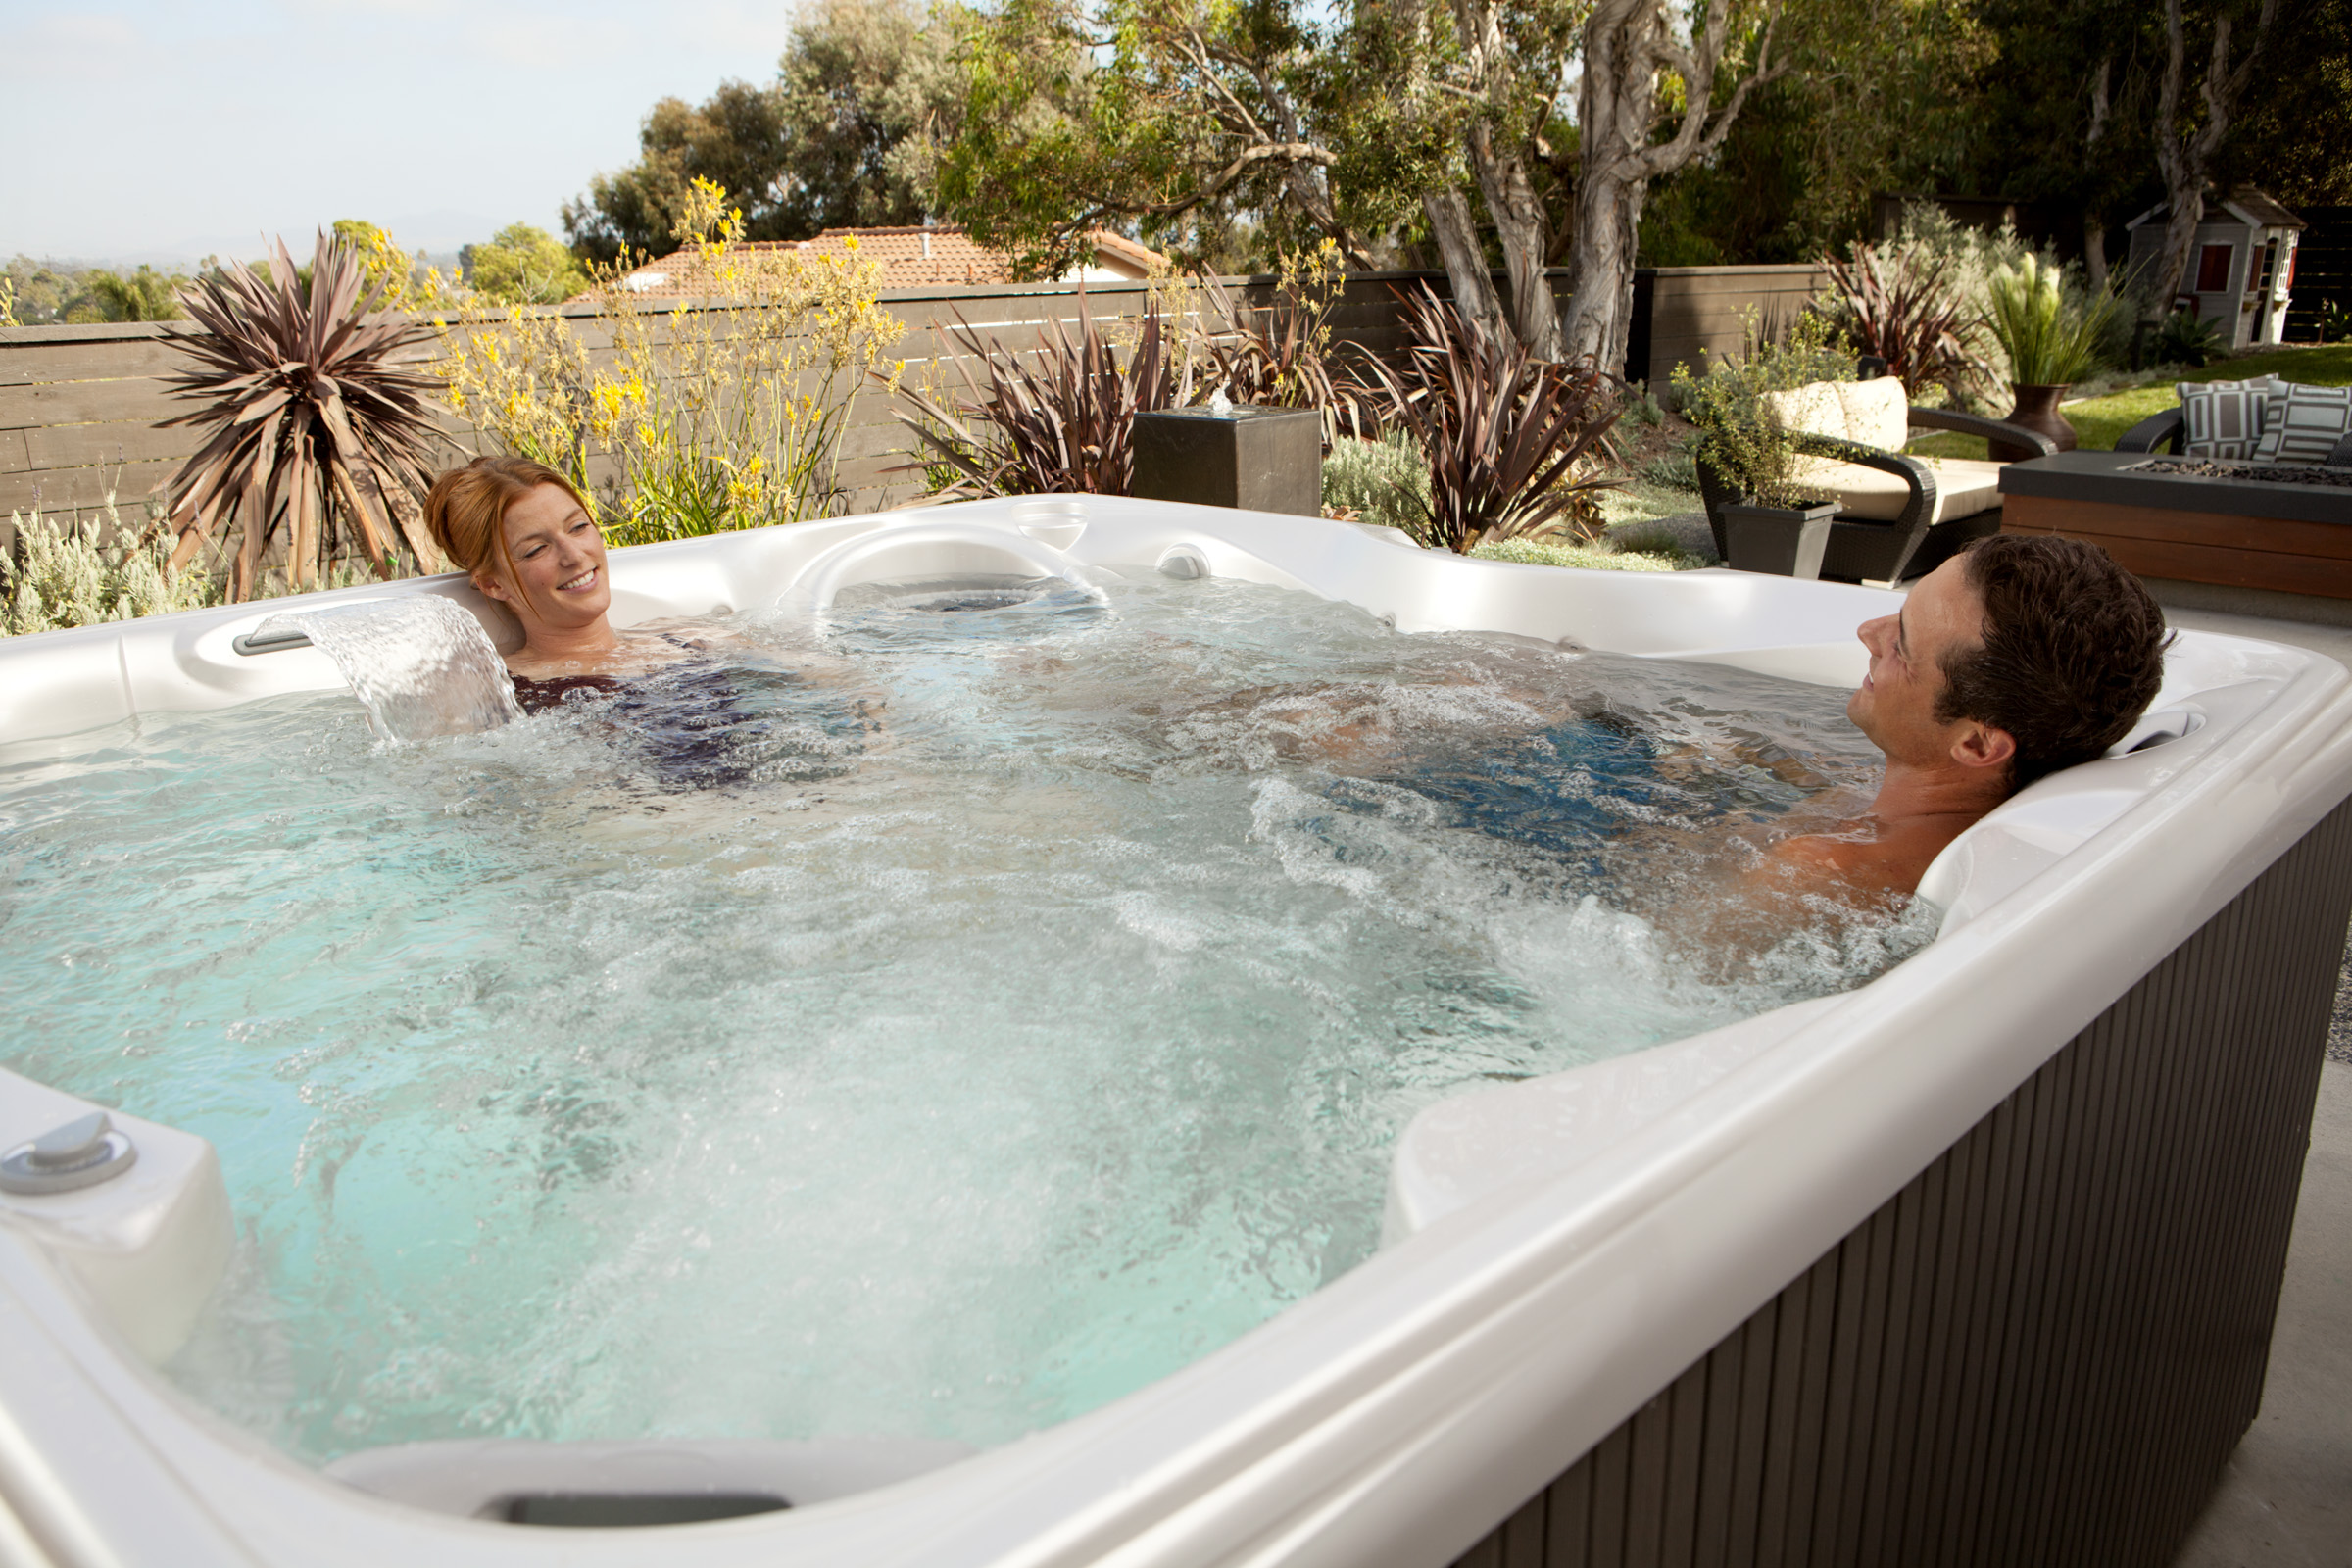 Overcoming PCOS and Obesity with your hot tub!